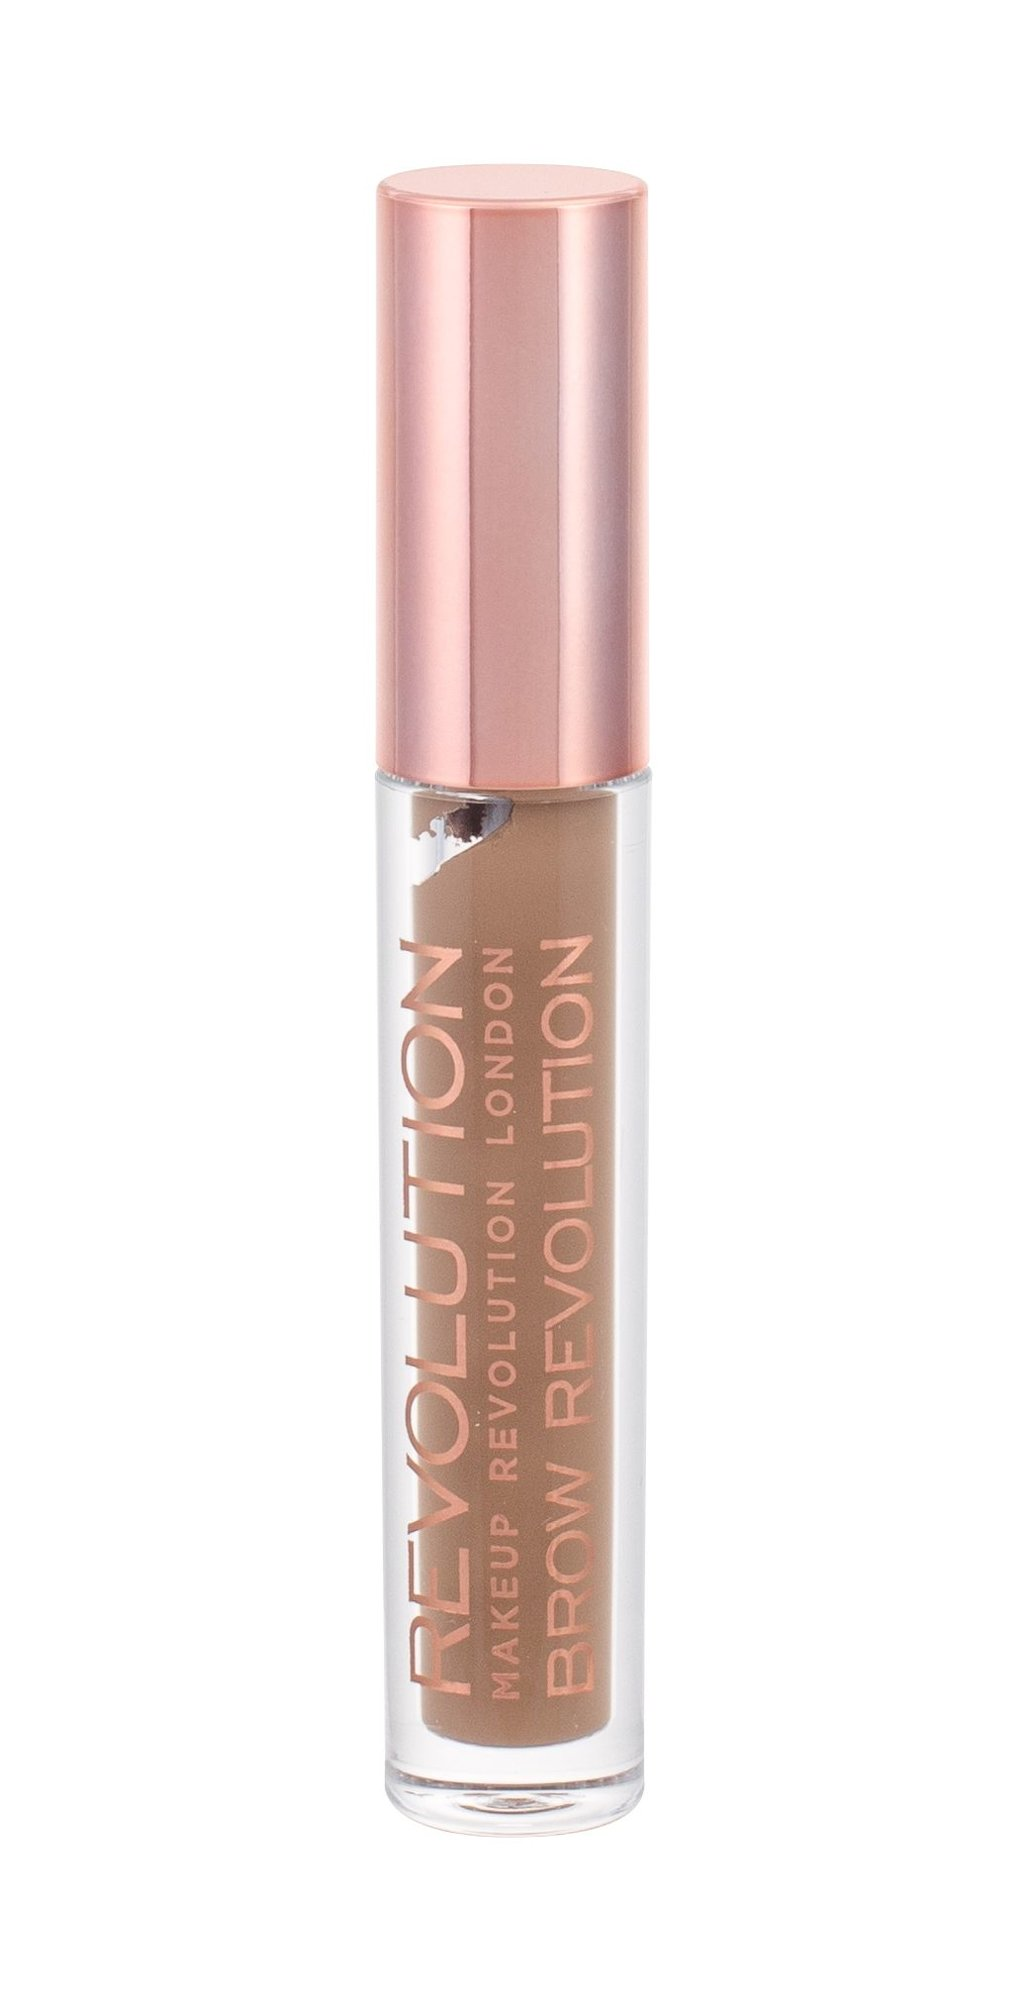 Makeup Revolution London Brow Revolution  (Gel a pomáda na obočí, W, 3,8 g)